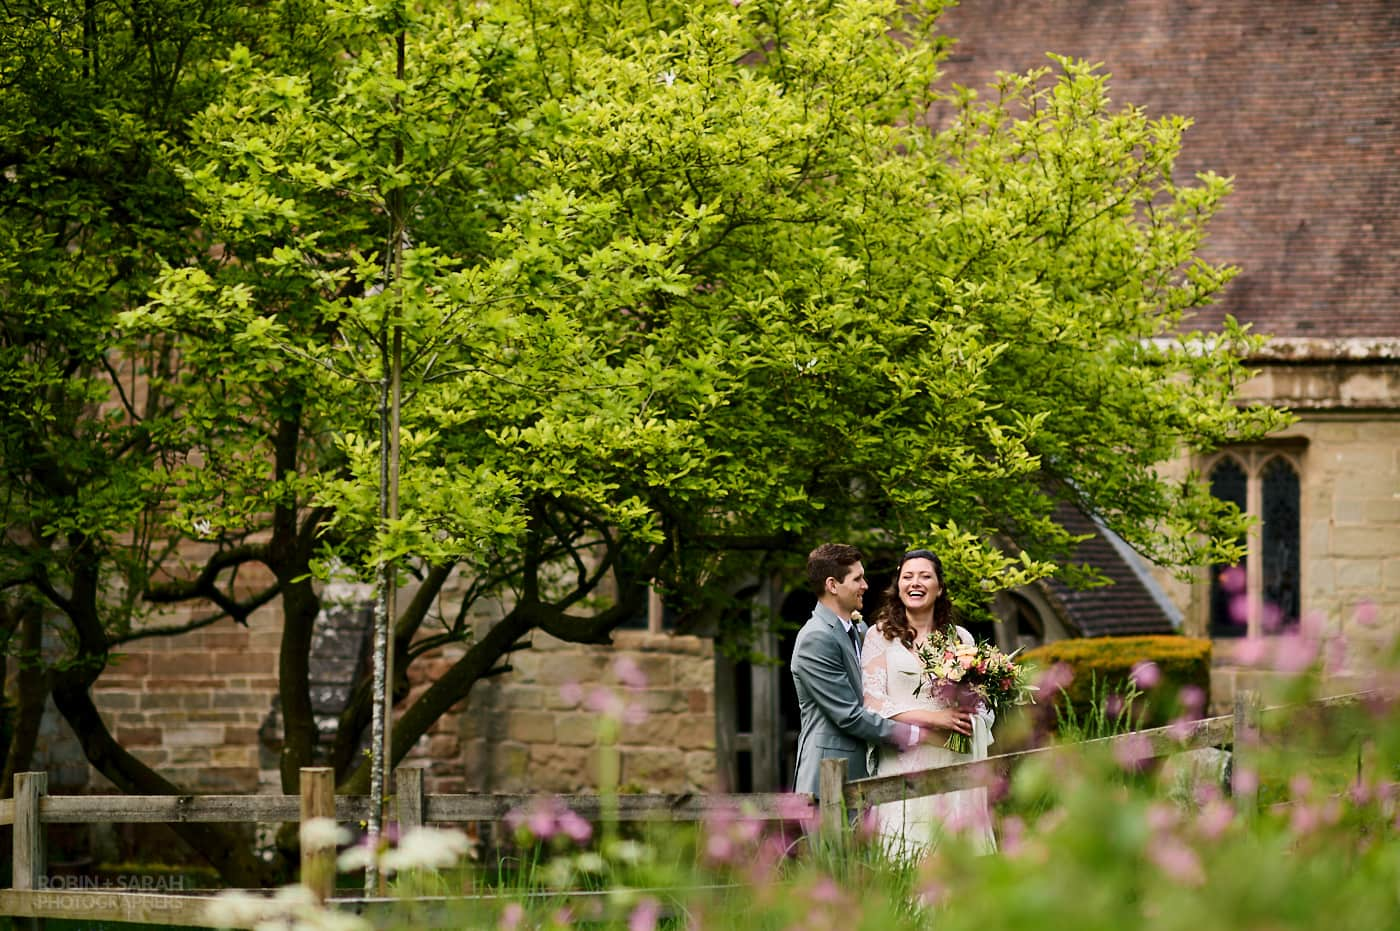 Bride and groom together in grounds at St Leonards church Beoley